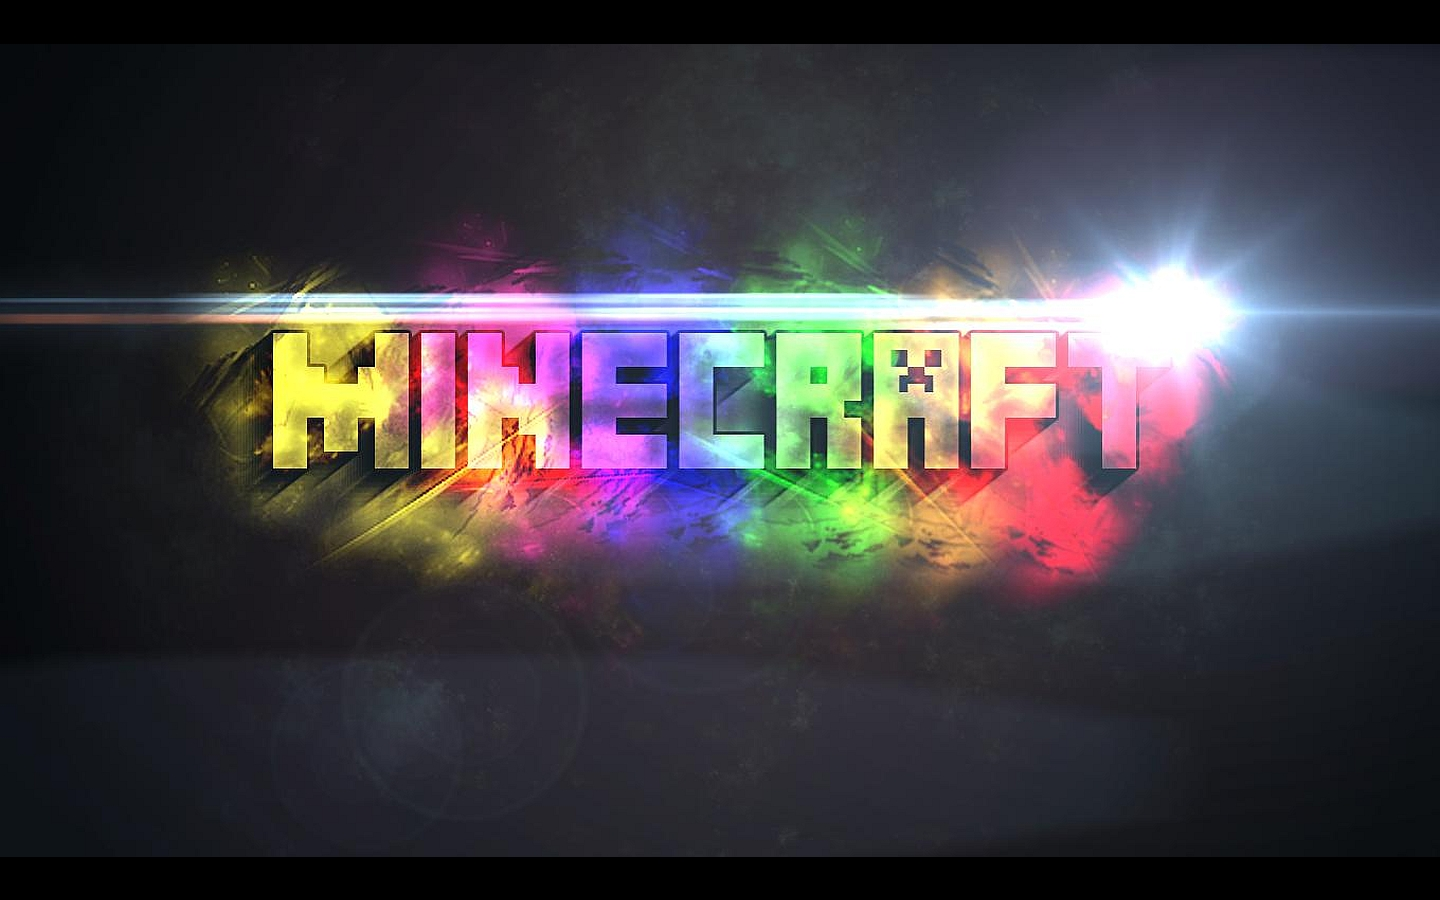 Beautiful Minecraft wallpaper